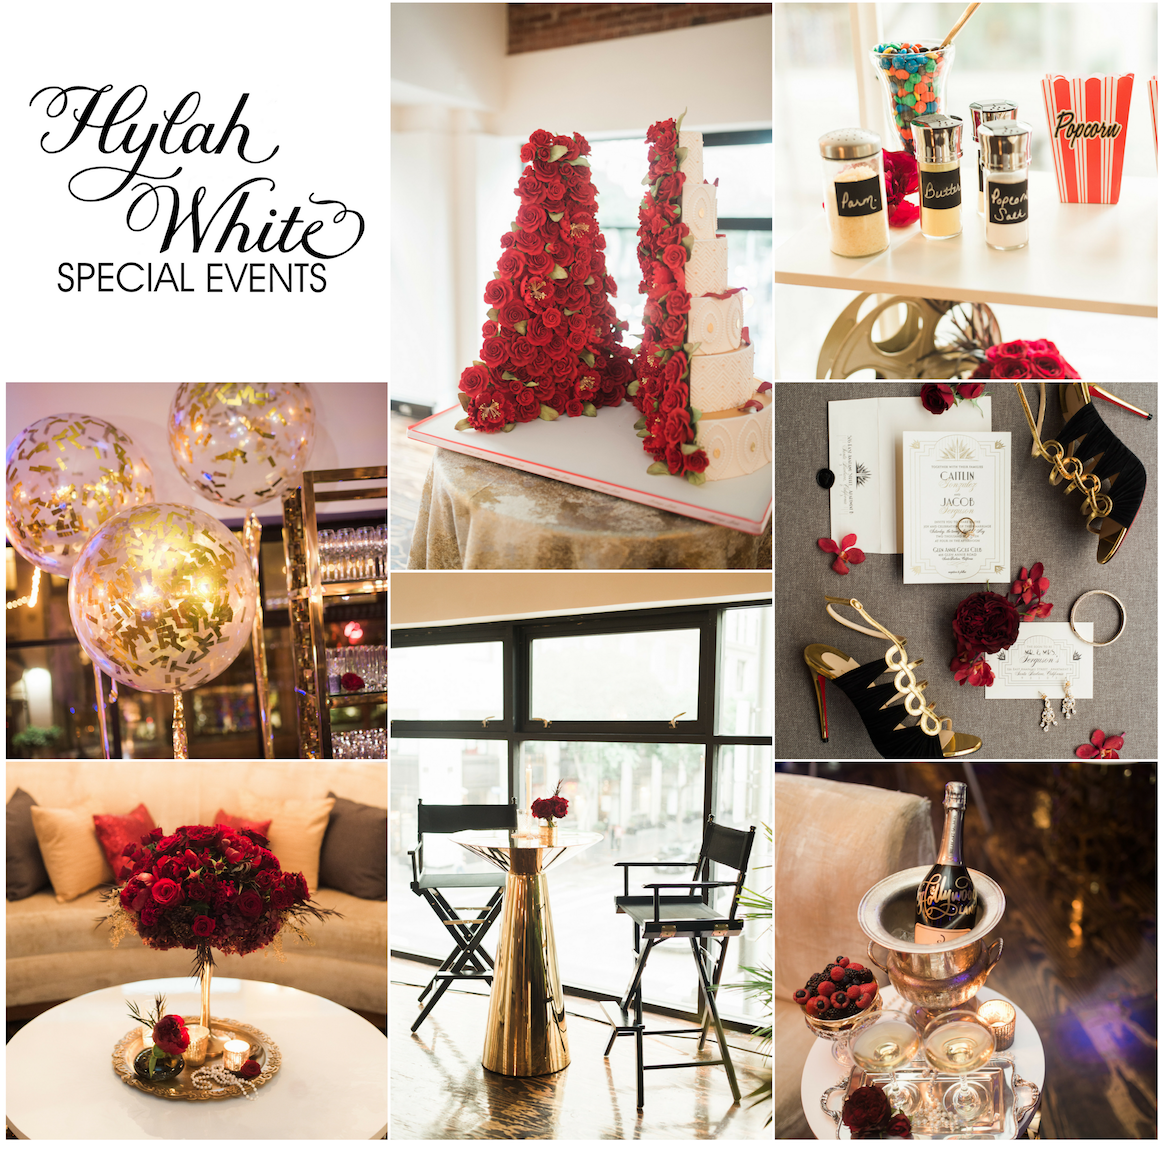 Red Gold Glamour Details California Wedding Day Hylah White Special Events